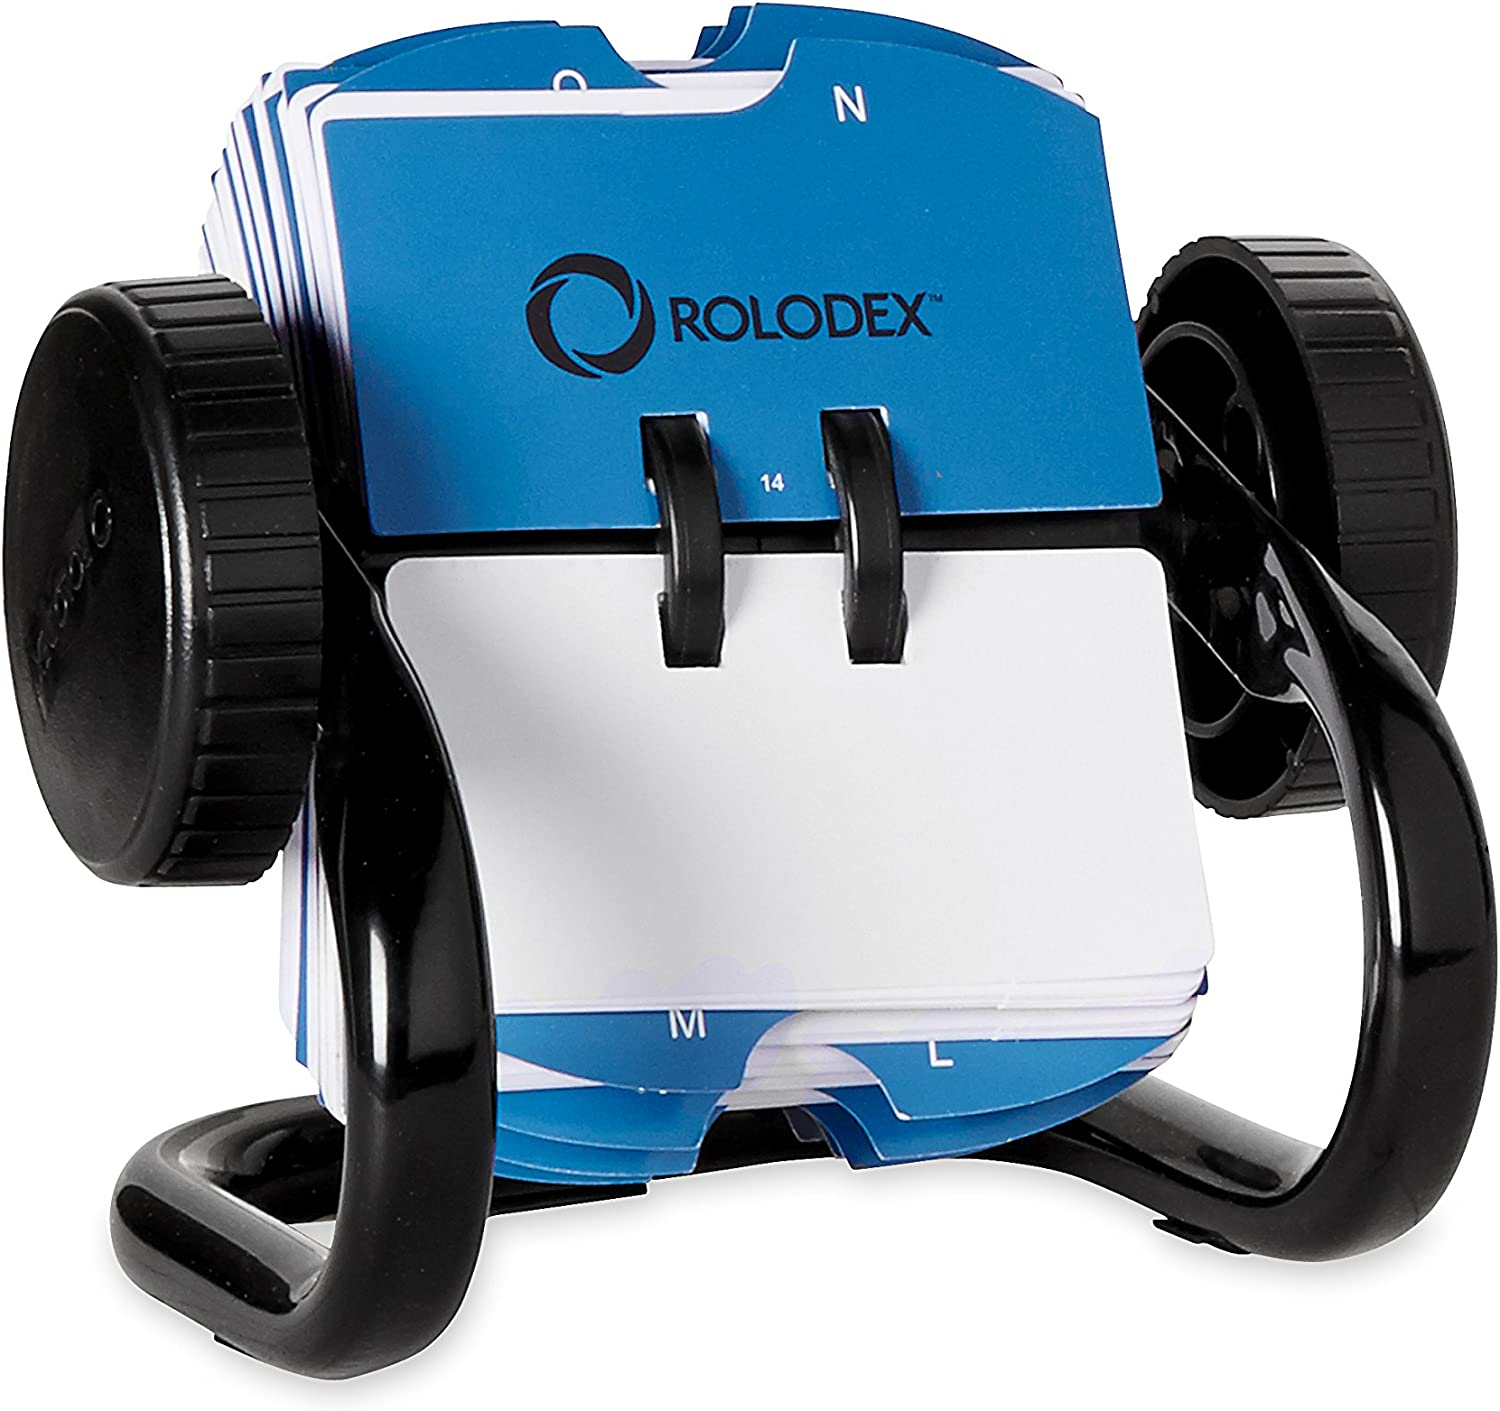 Rolodex Printable Business Cards for Rotary Business Card File 240 67620